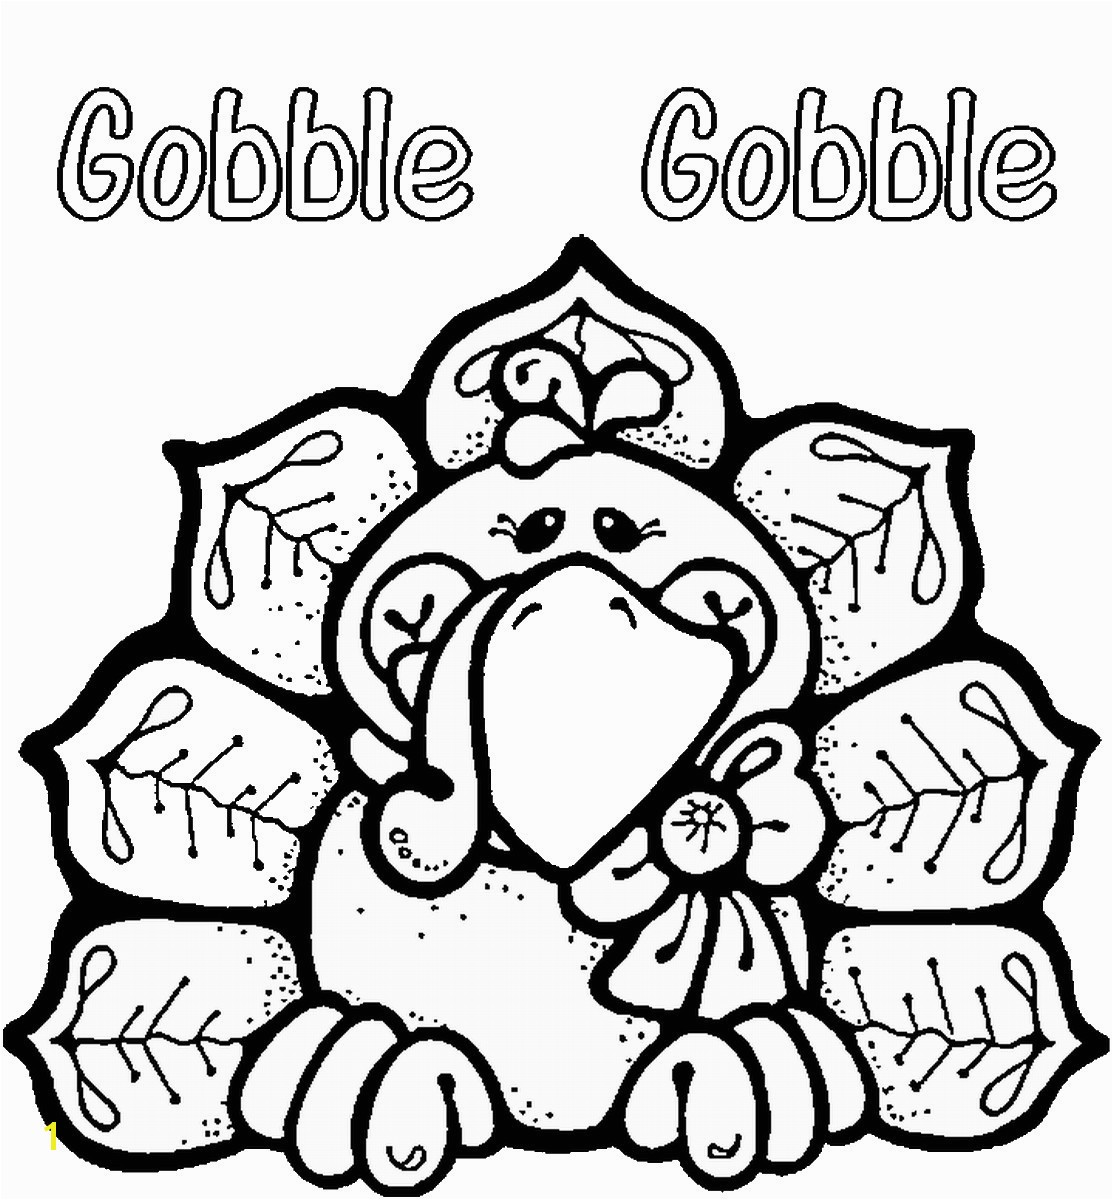 Crossbow Coloring Pages Awesome Free Thanksgiving Coloring Pages for Kindergarten Unique Splatoon Gallery